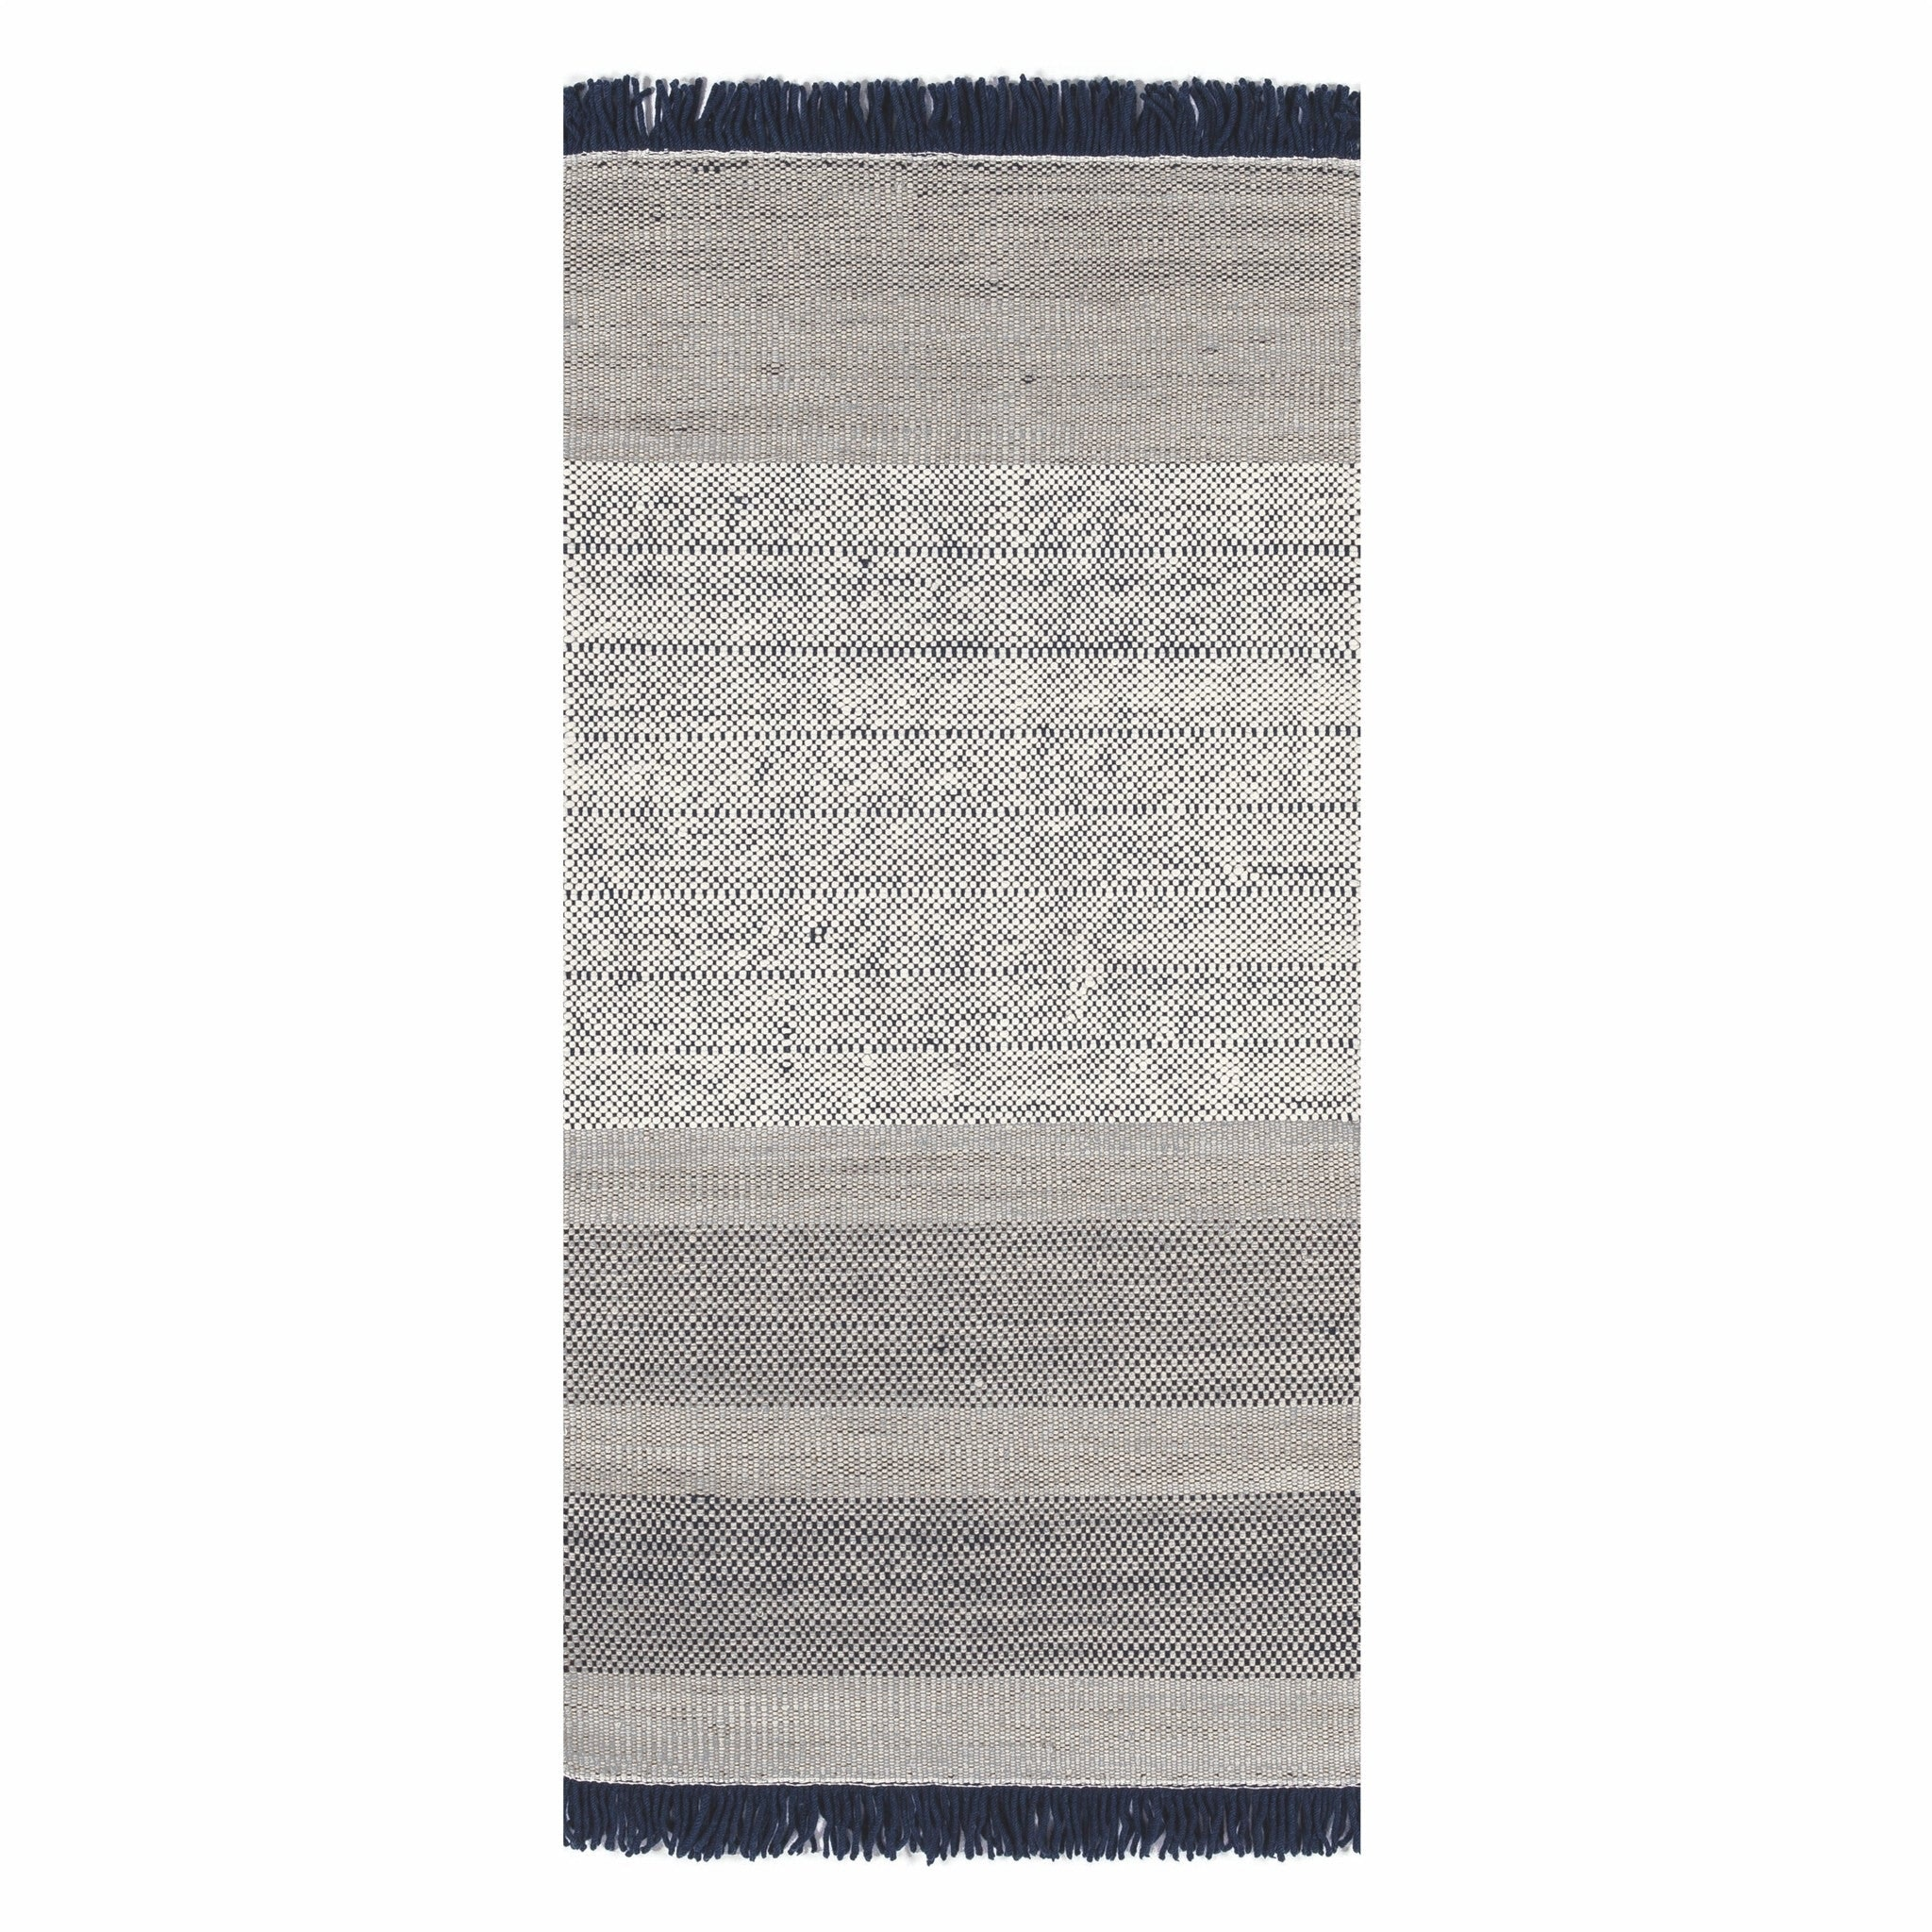 Tres Stripes Rug by Nani Marquina